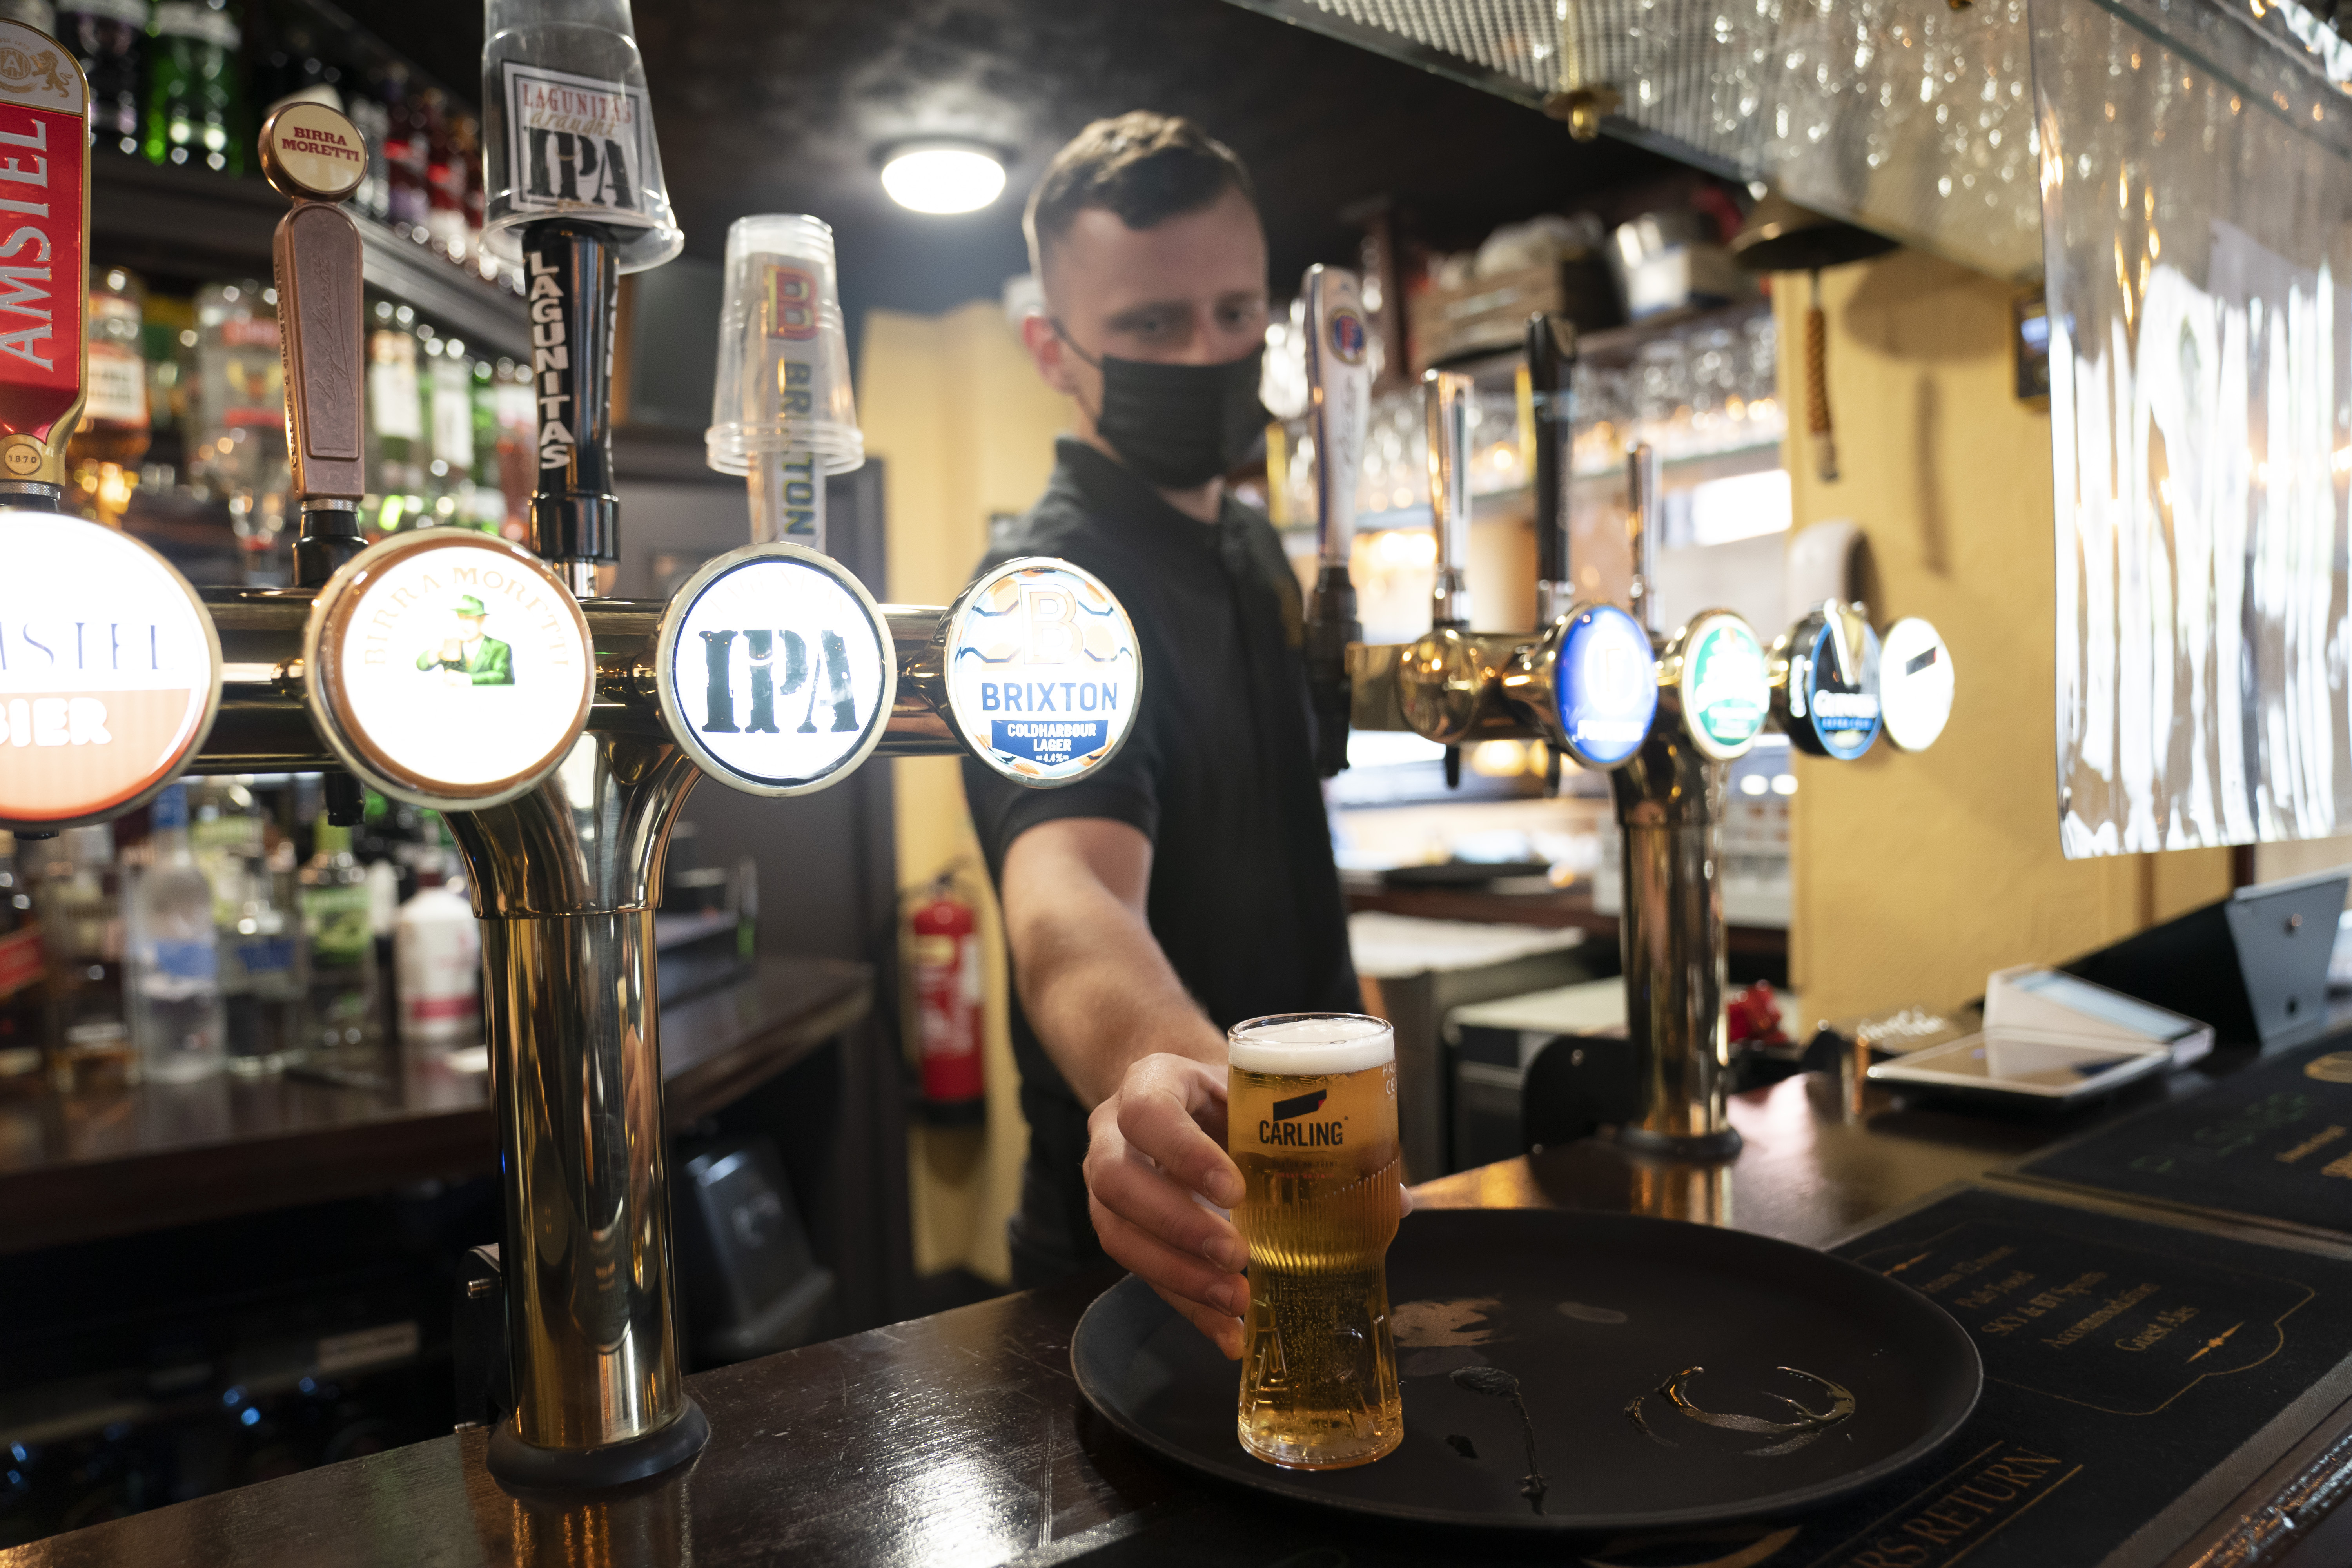 A member of staff serves a drink, as pubs, cafes and restaurants in England reopen indoors under the latest easing of the coronavirus lockdown, in Manchester, England, Monday, May 17, 2021.